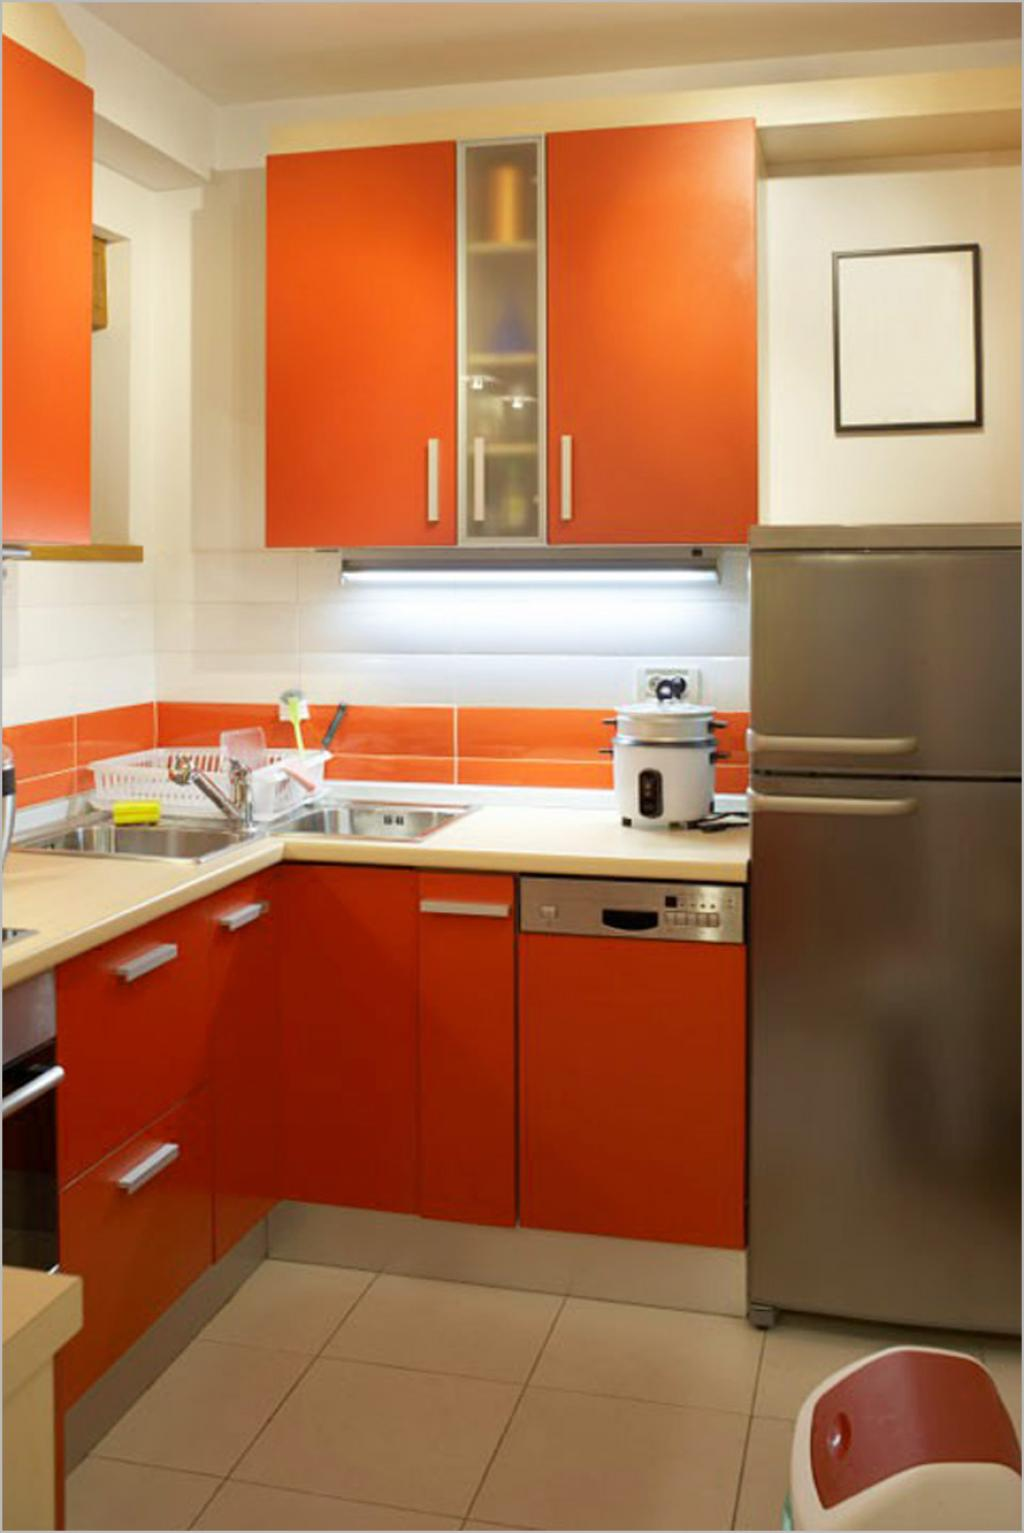 Small Kitchen Ideas and paints design - View Affordable Kitchen Simple Low Cost Small House Kitchen Design PNG